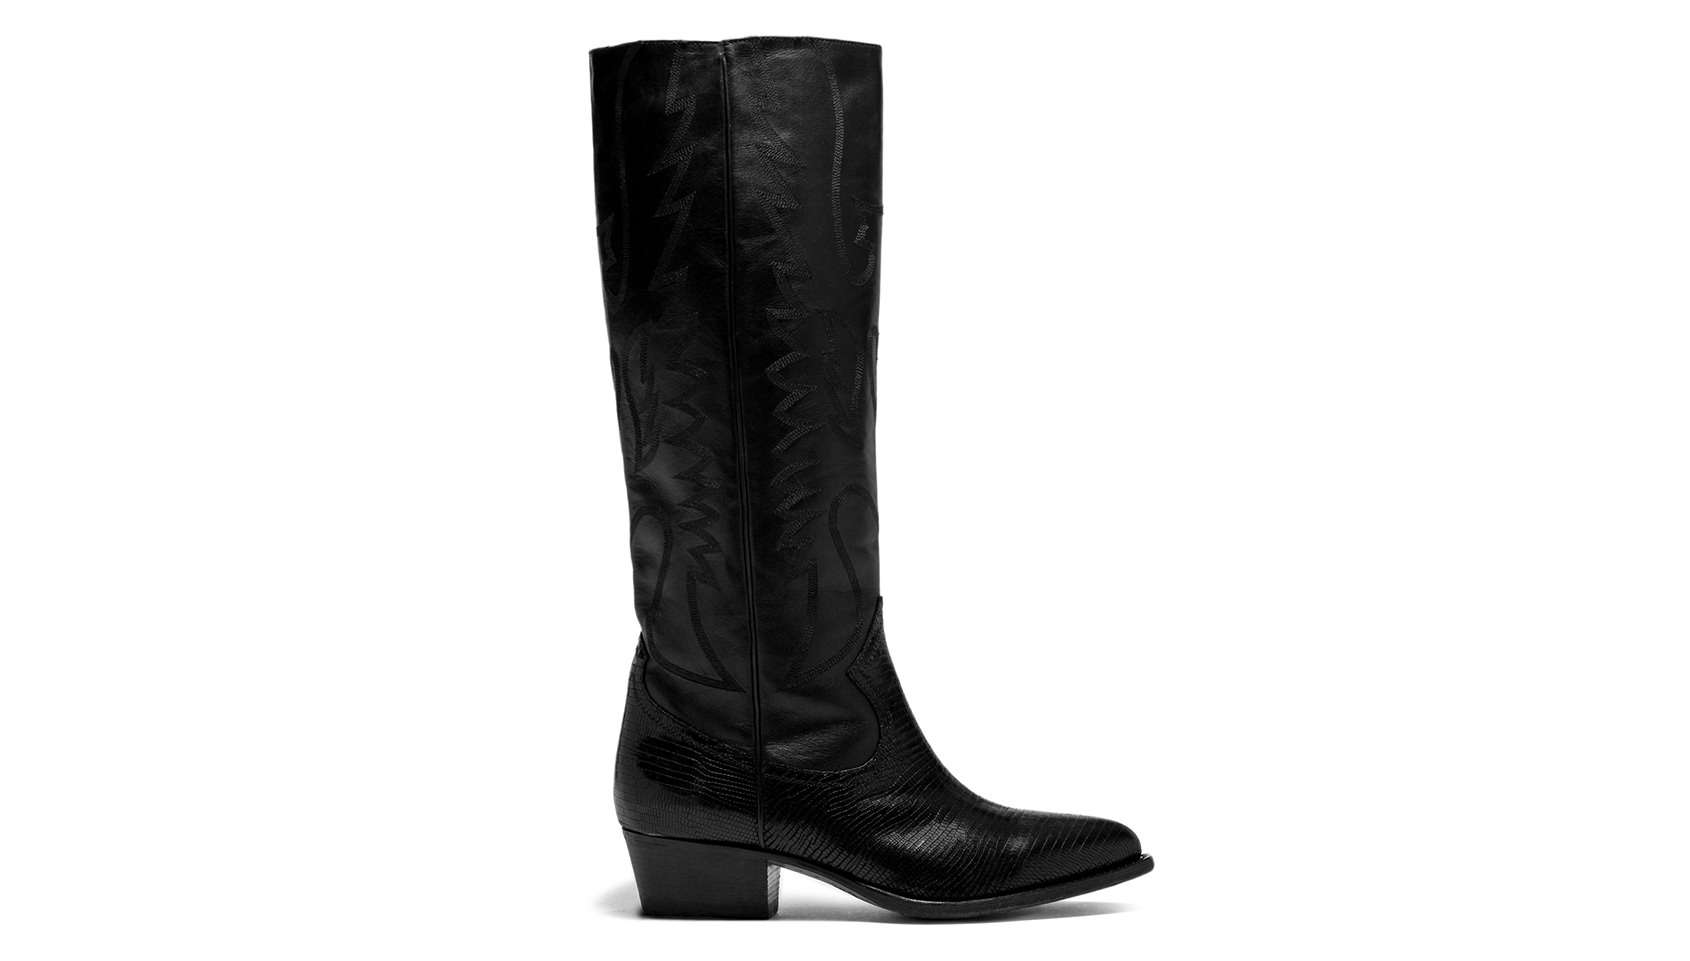 BUTTERO: BLACK LEATHER  TRES HIGH TOP DURANGO BOOTS